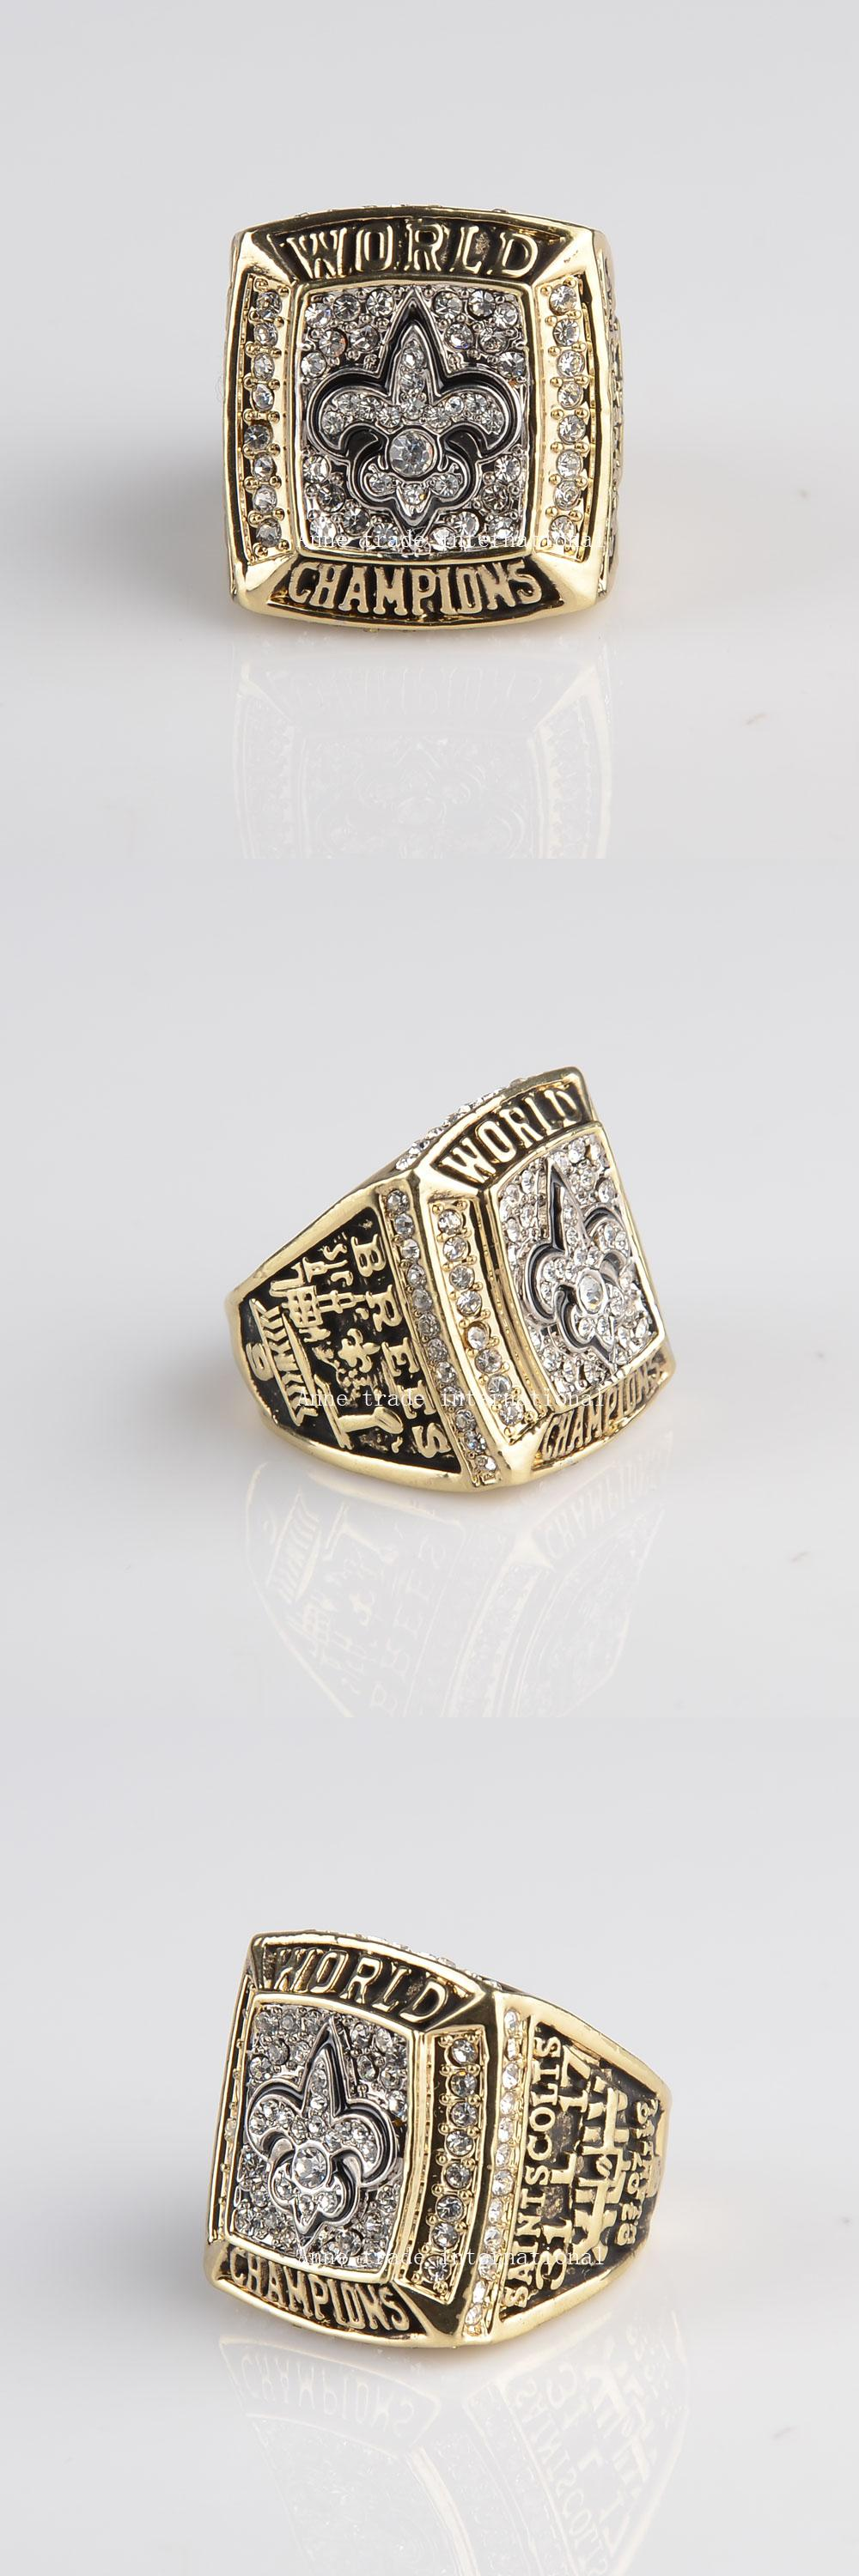 falcons nfl r comments ring rings championship nfc saints